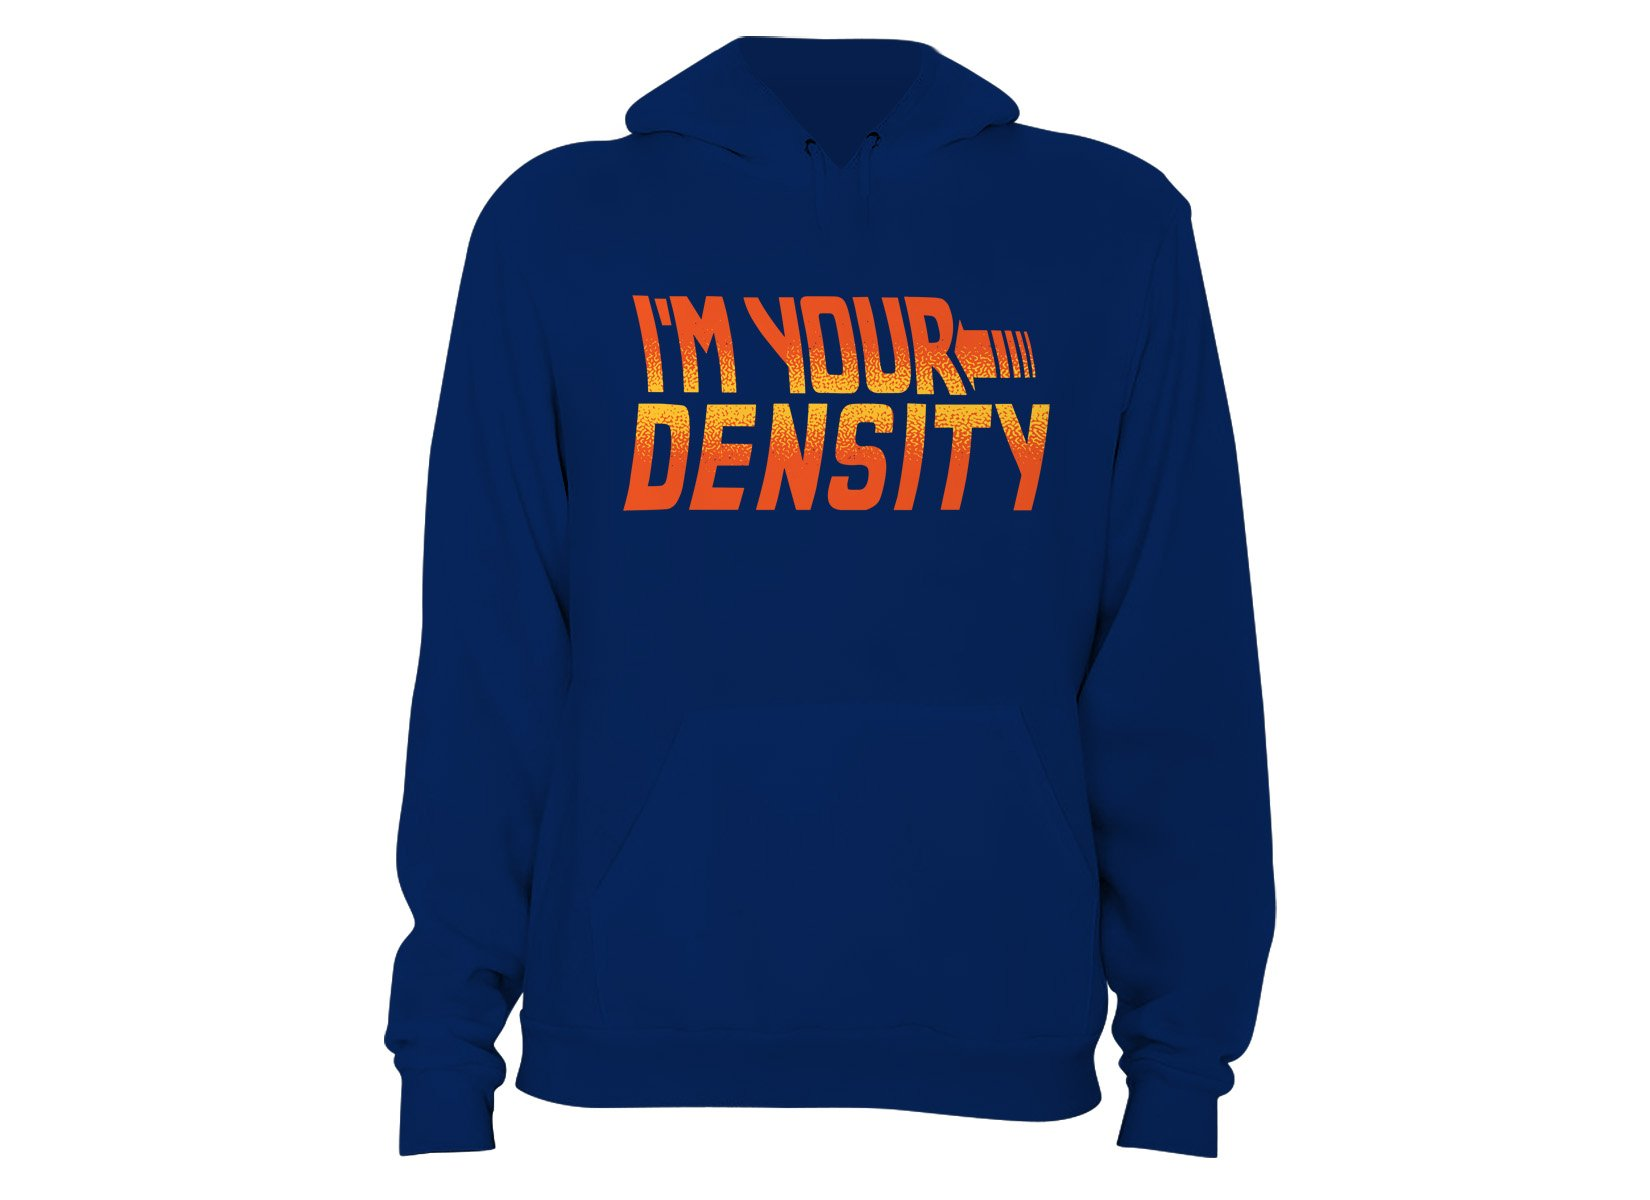 I'm Your Density on Hoodie